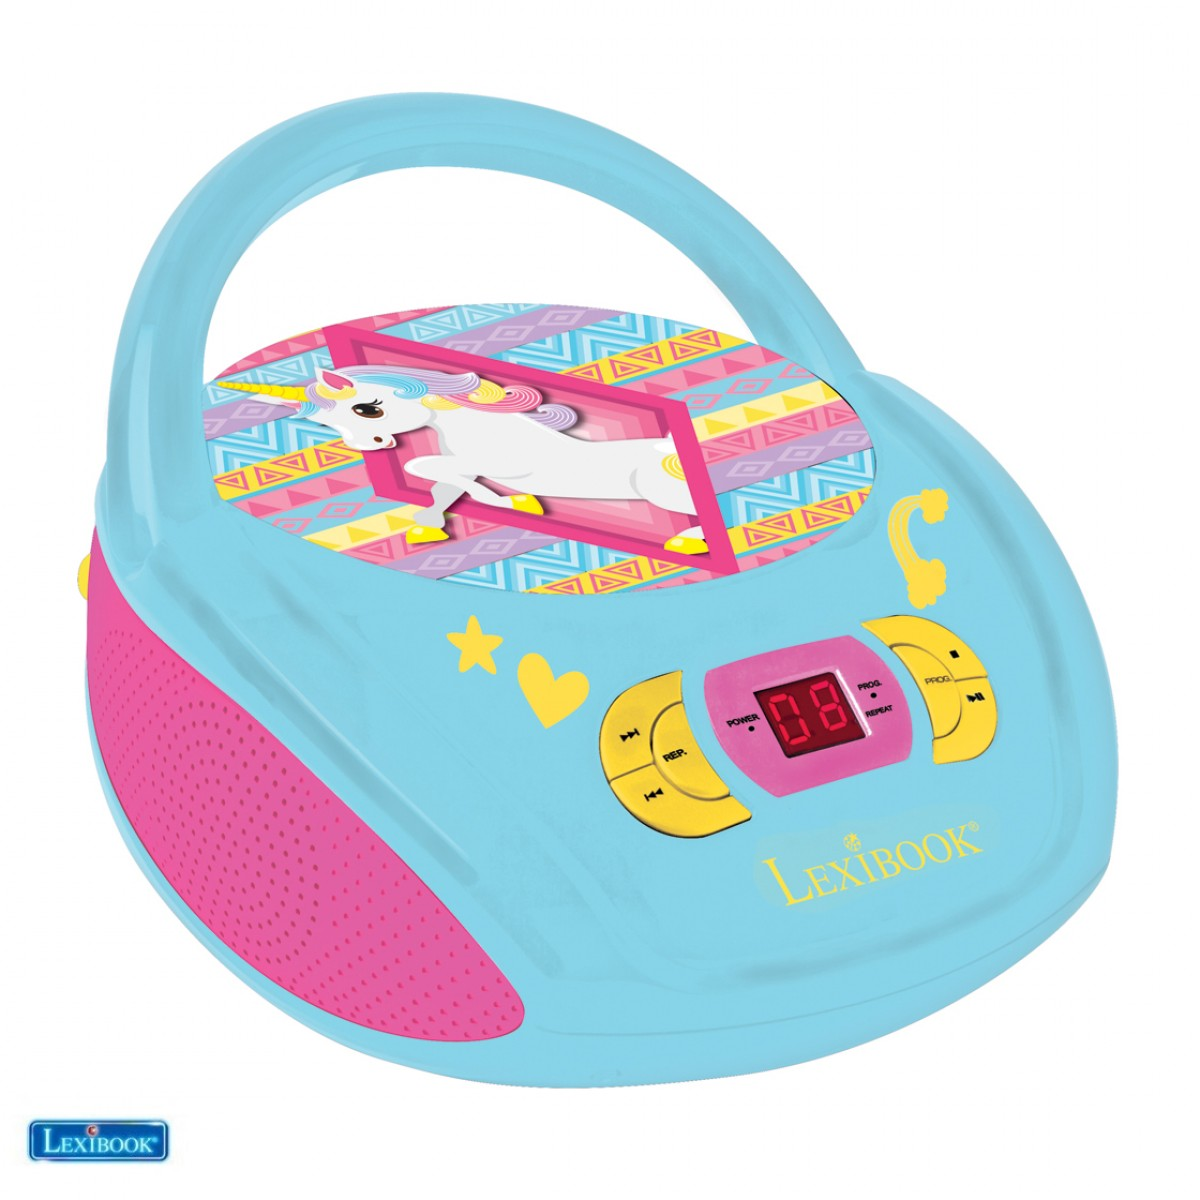 Radio CD player Licorne